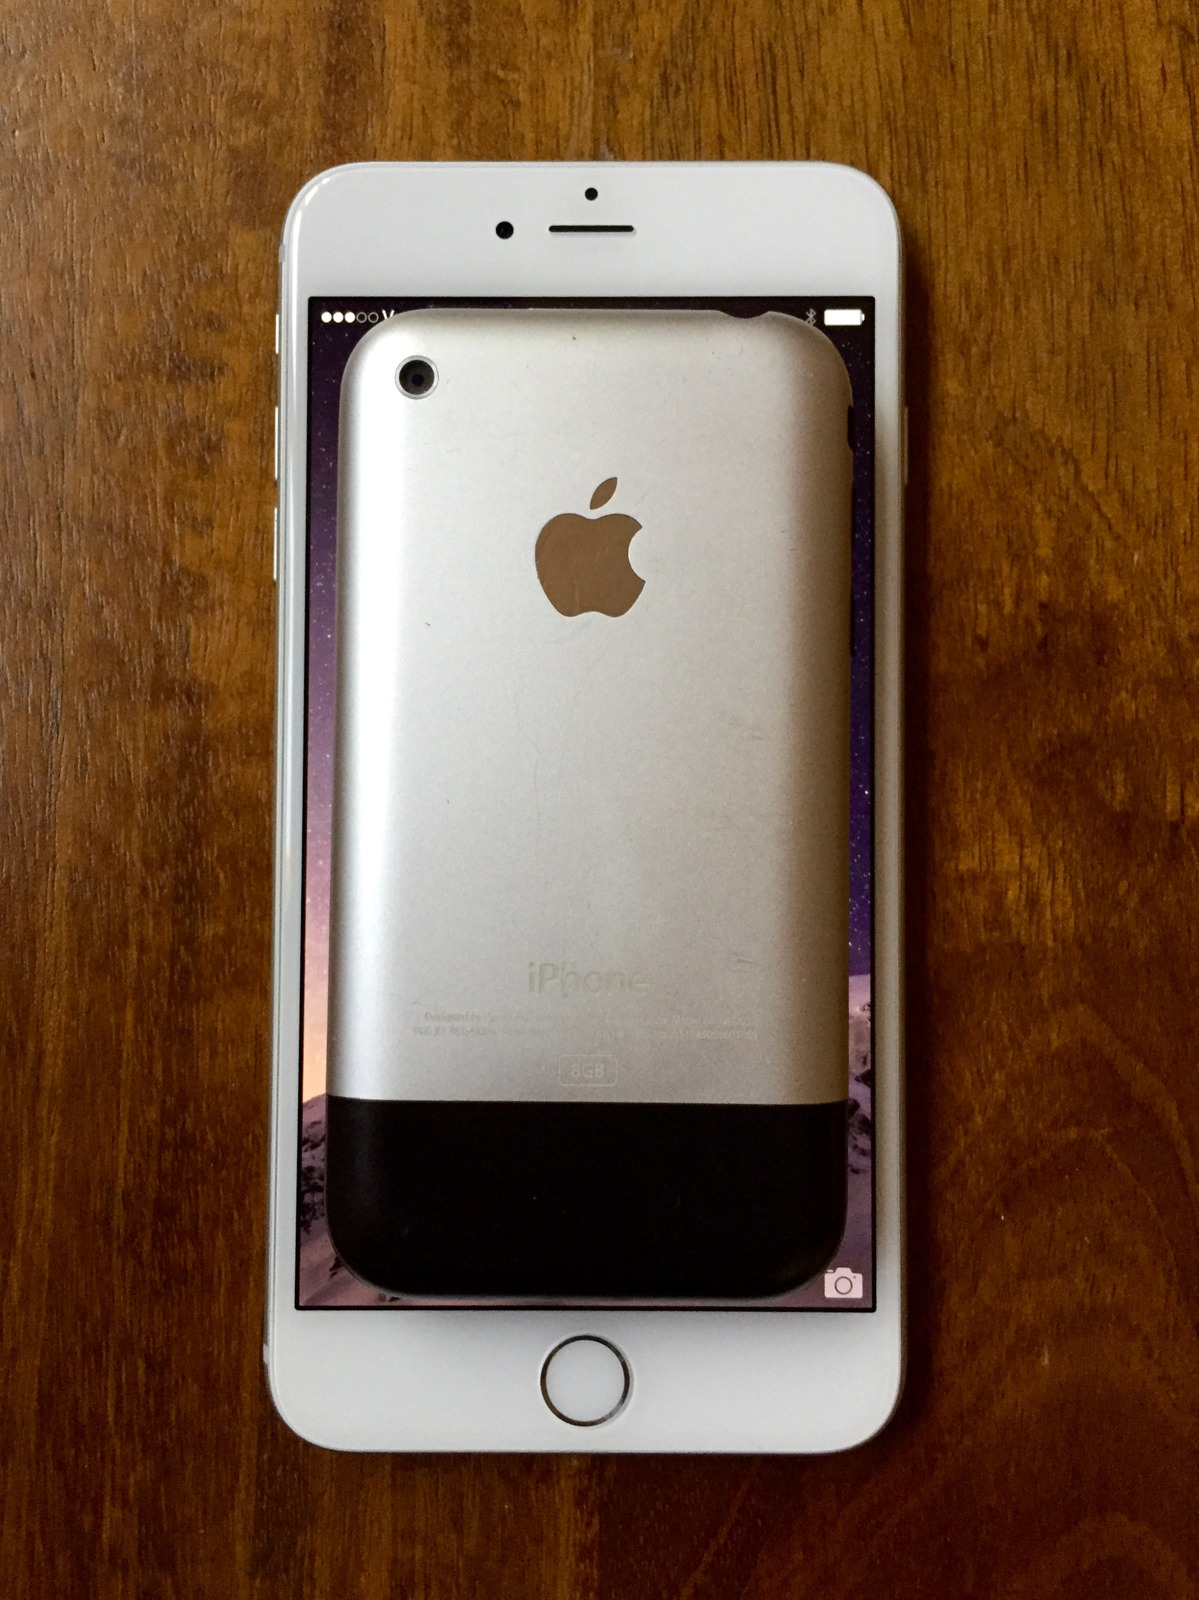 An original 2007 iPhone fits entirely within the display, just the display, of an iPhone 6 Plus.